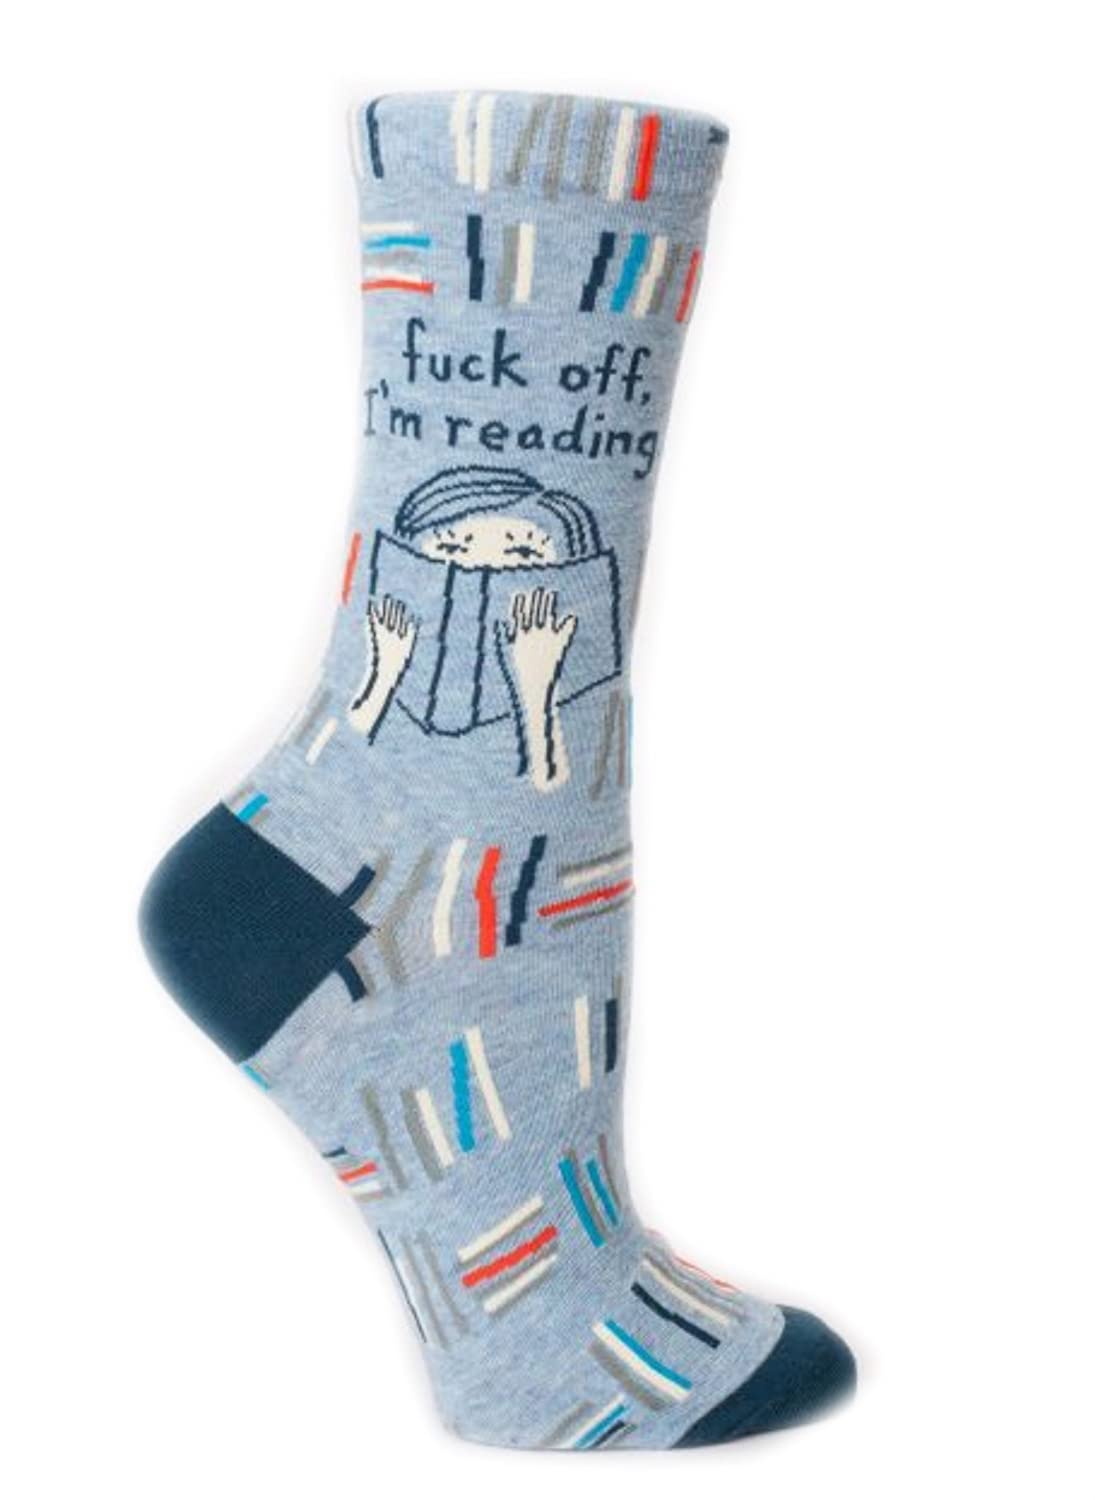 Library cats Athletic Crew Socks Running Tube Sock Thick Workout Socks All-season for Mens Womens